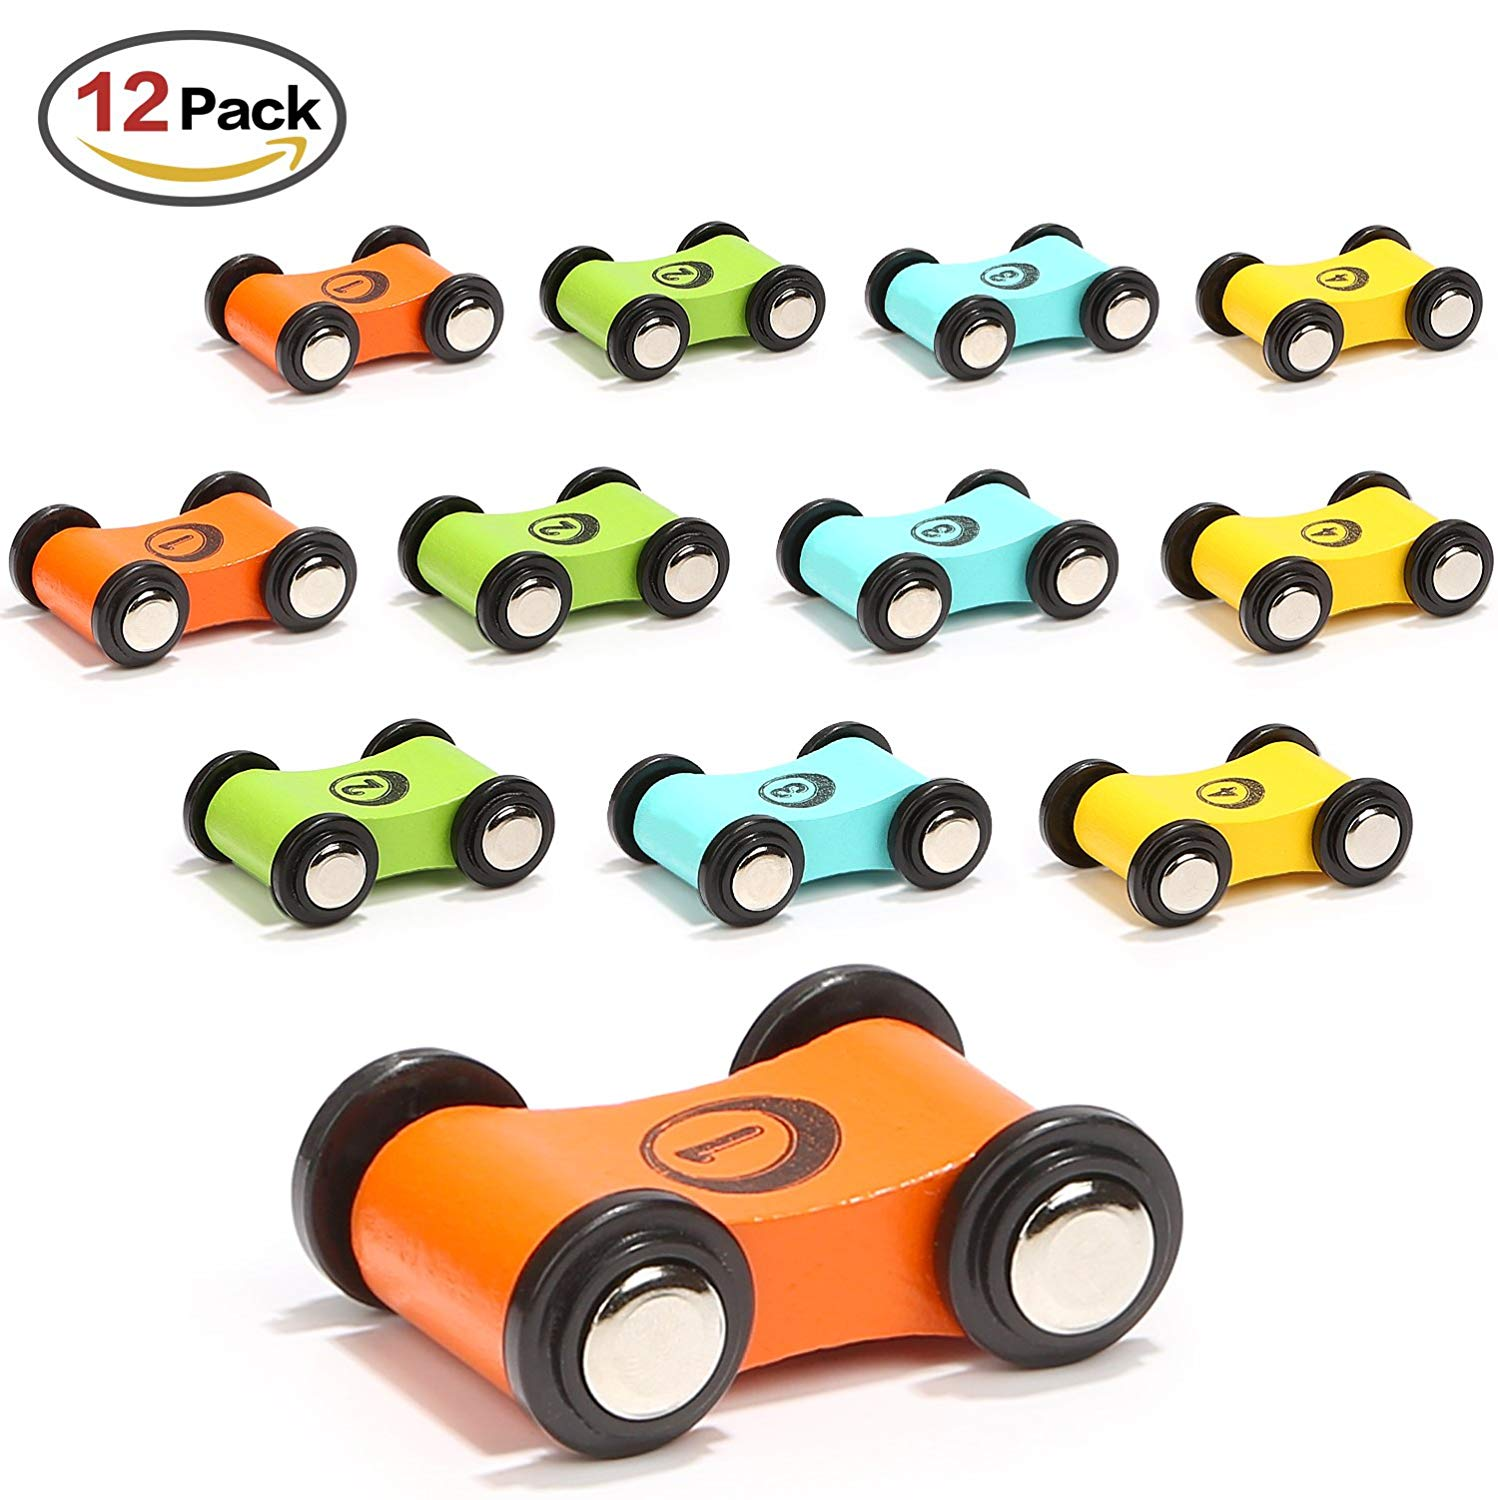 12PCS/Lot Wooden Track Car Toys Small Diecast Replacement Tollder Gliding Car For Kids Turn Back Ramp Car Racing Games